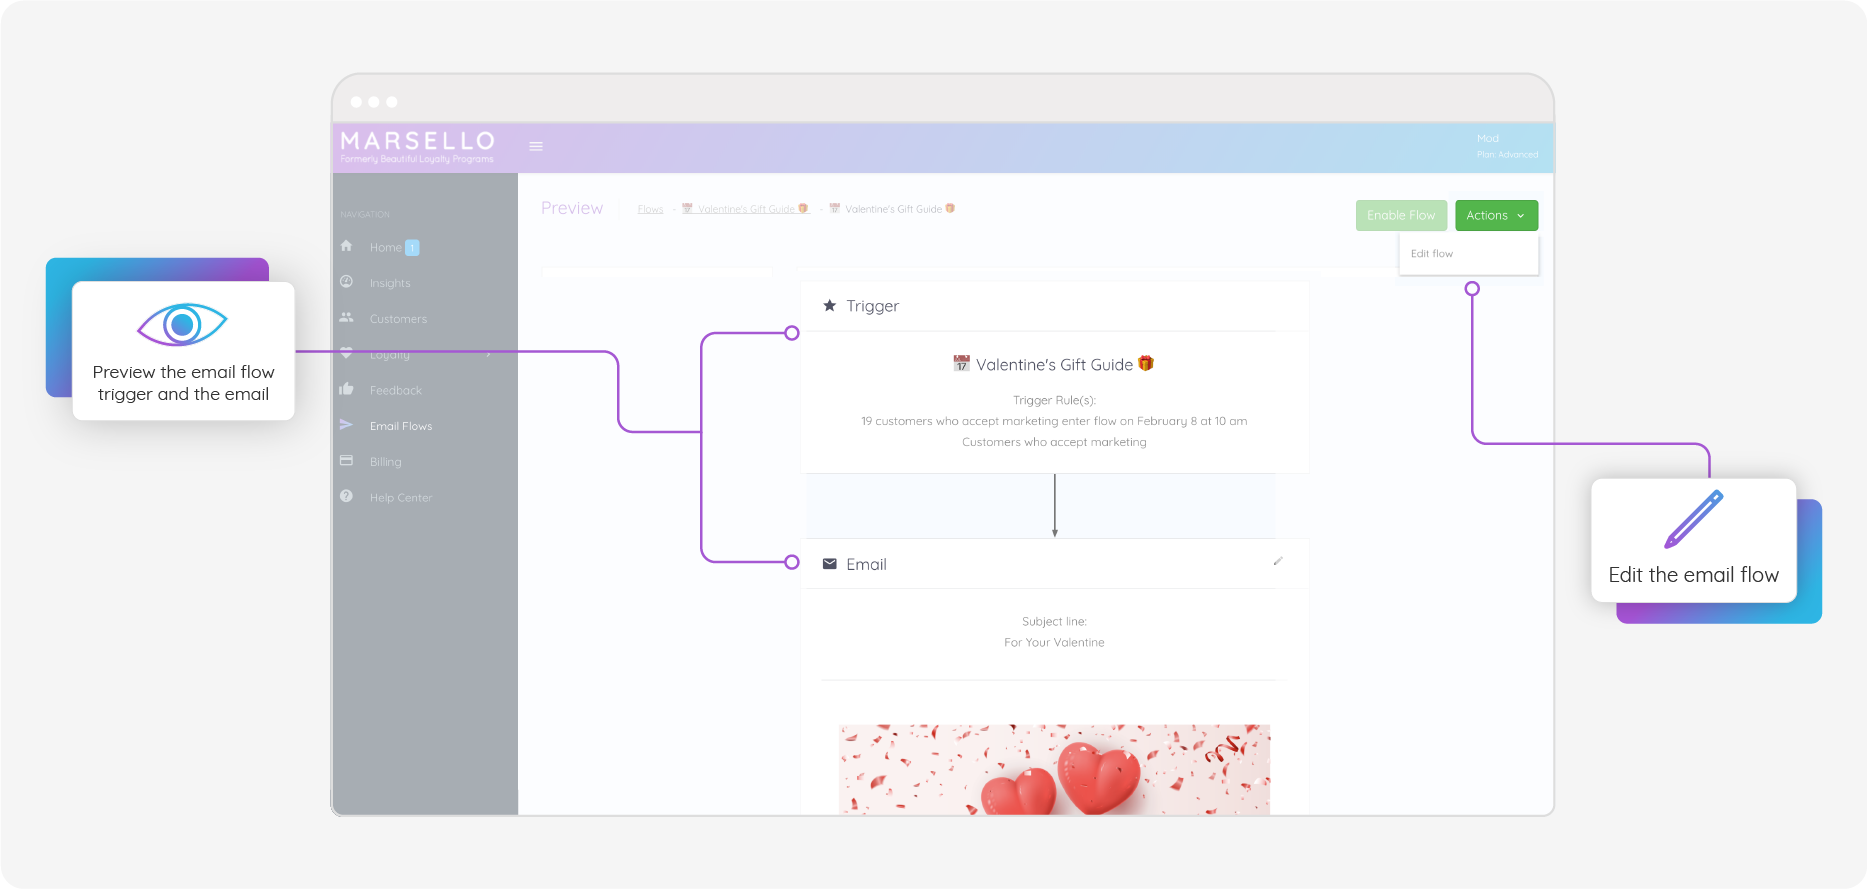 Marsello Email Flow preview and edit sequence